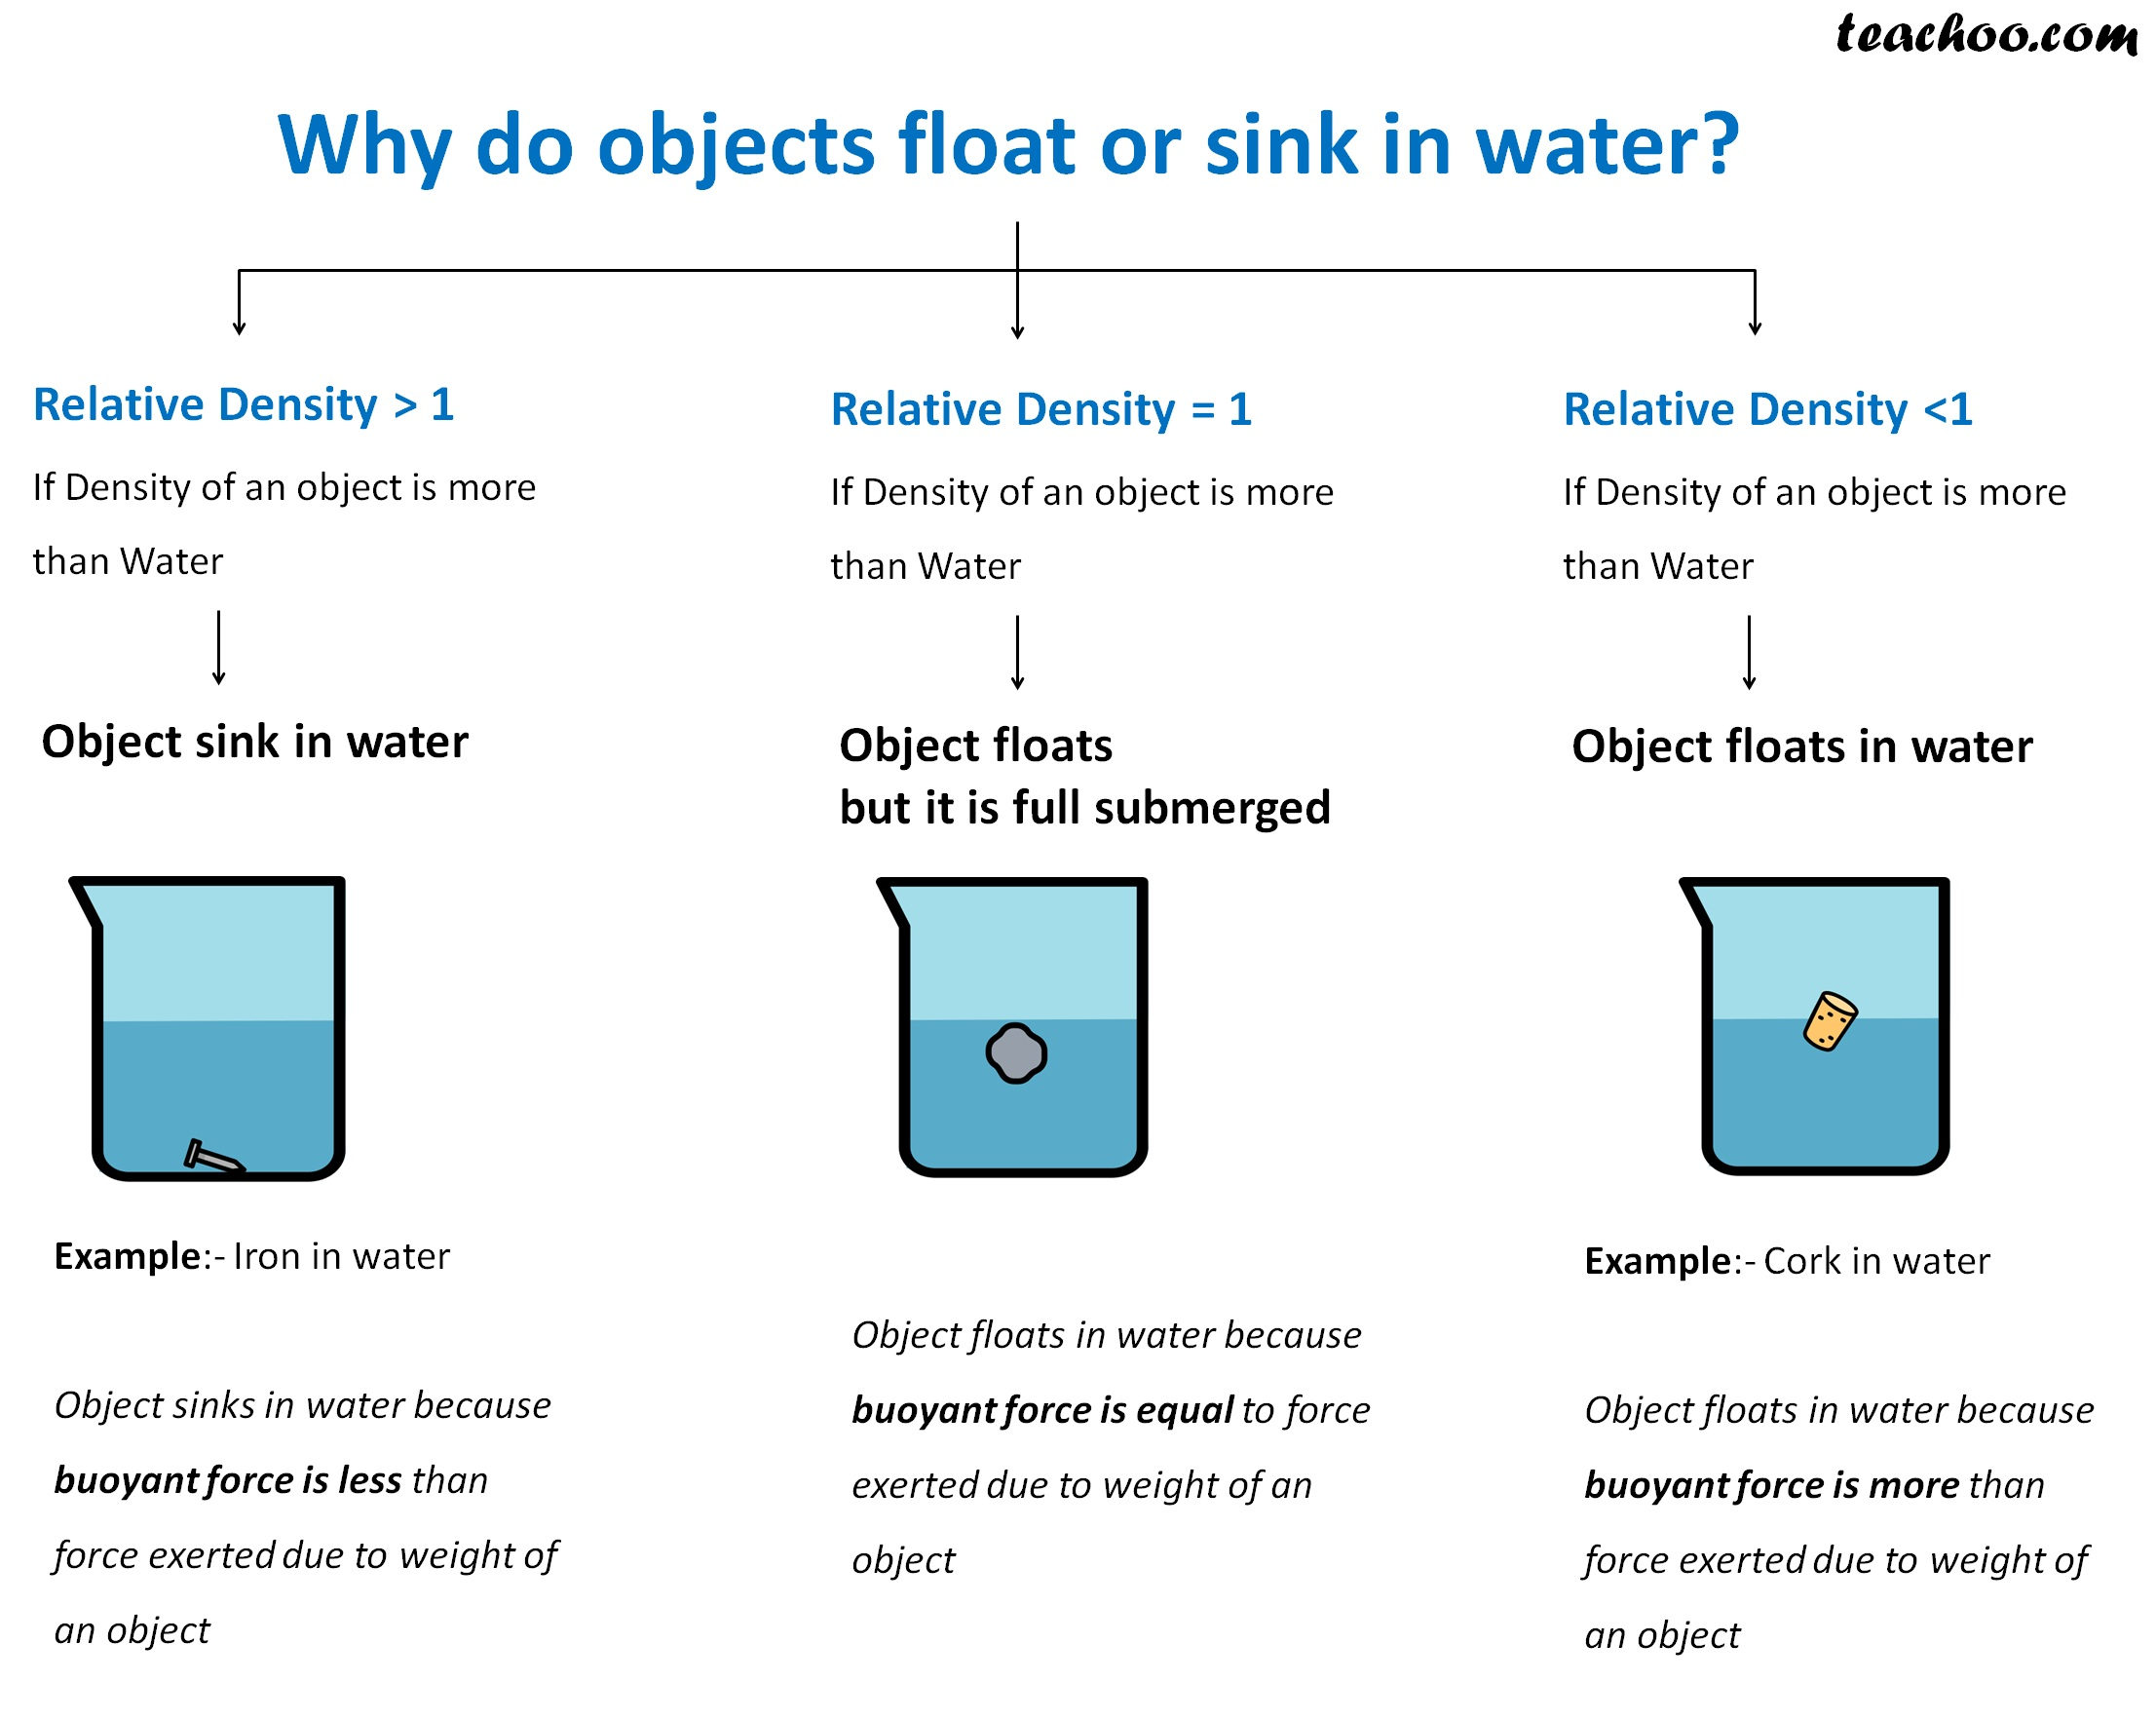 why do objects float or sink in water.jpg